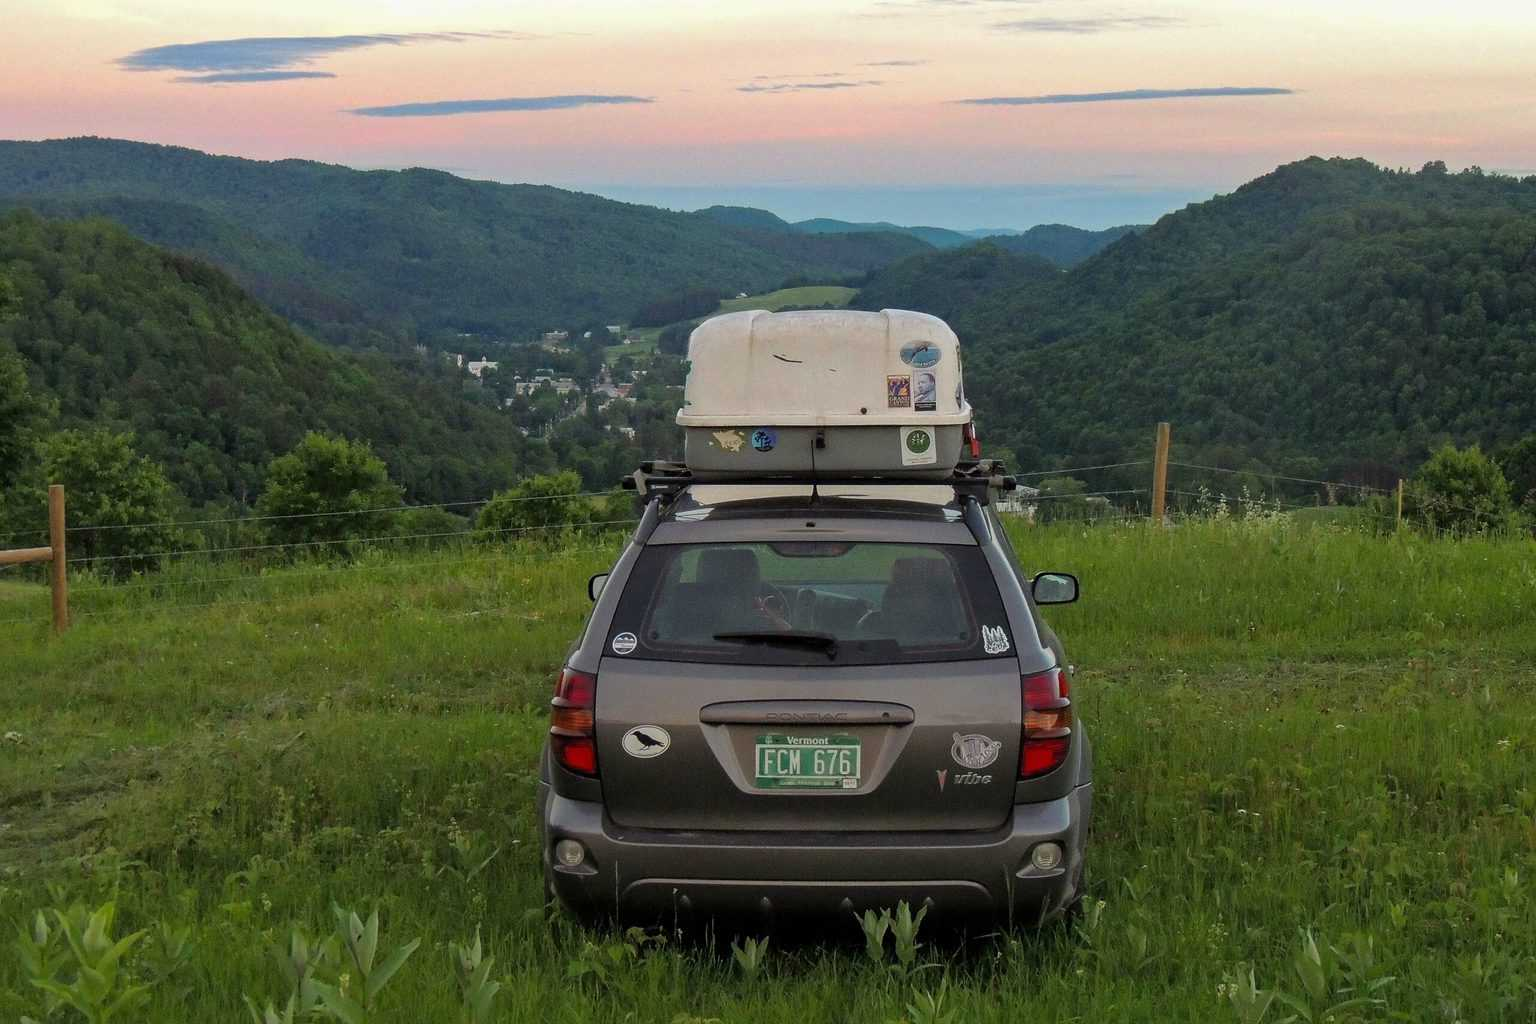 The back of a grey car with a white cargo carrier on top of it pointing toward a mountain sunset.